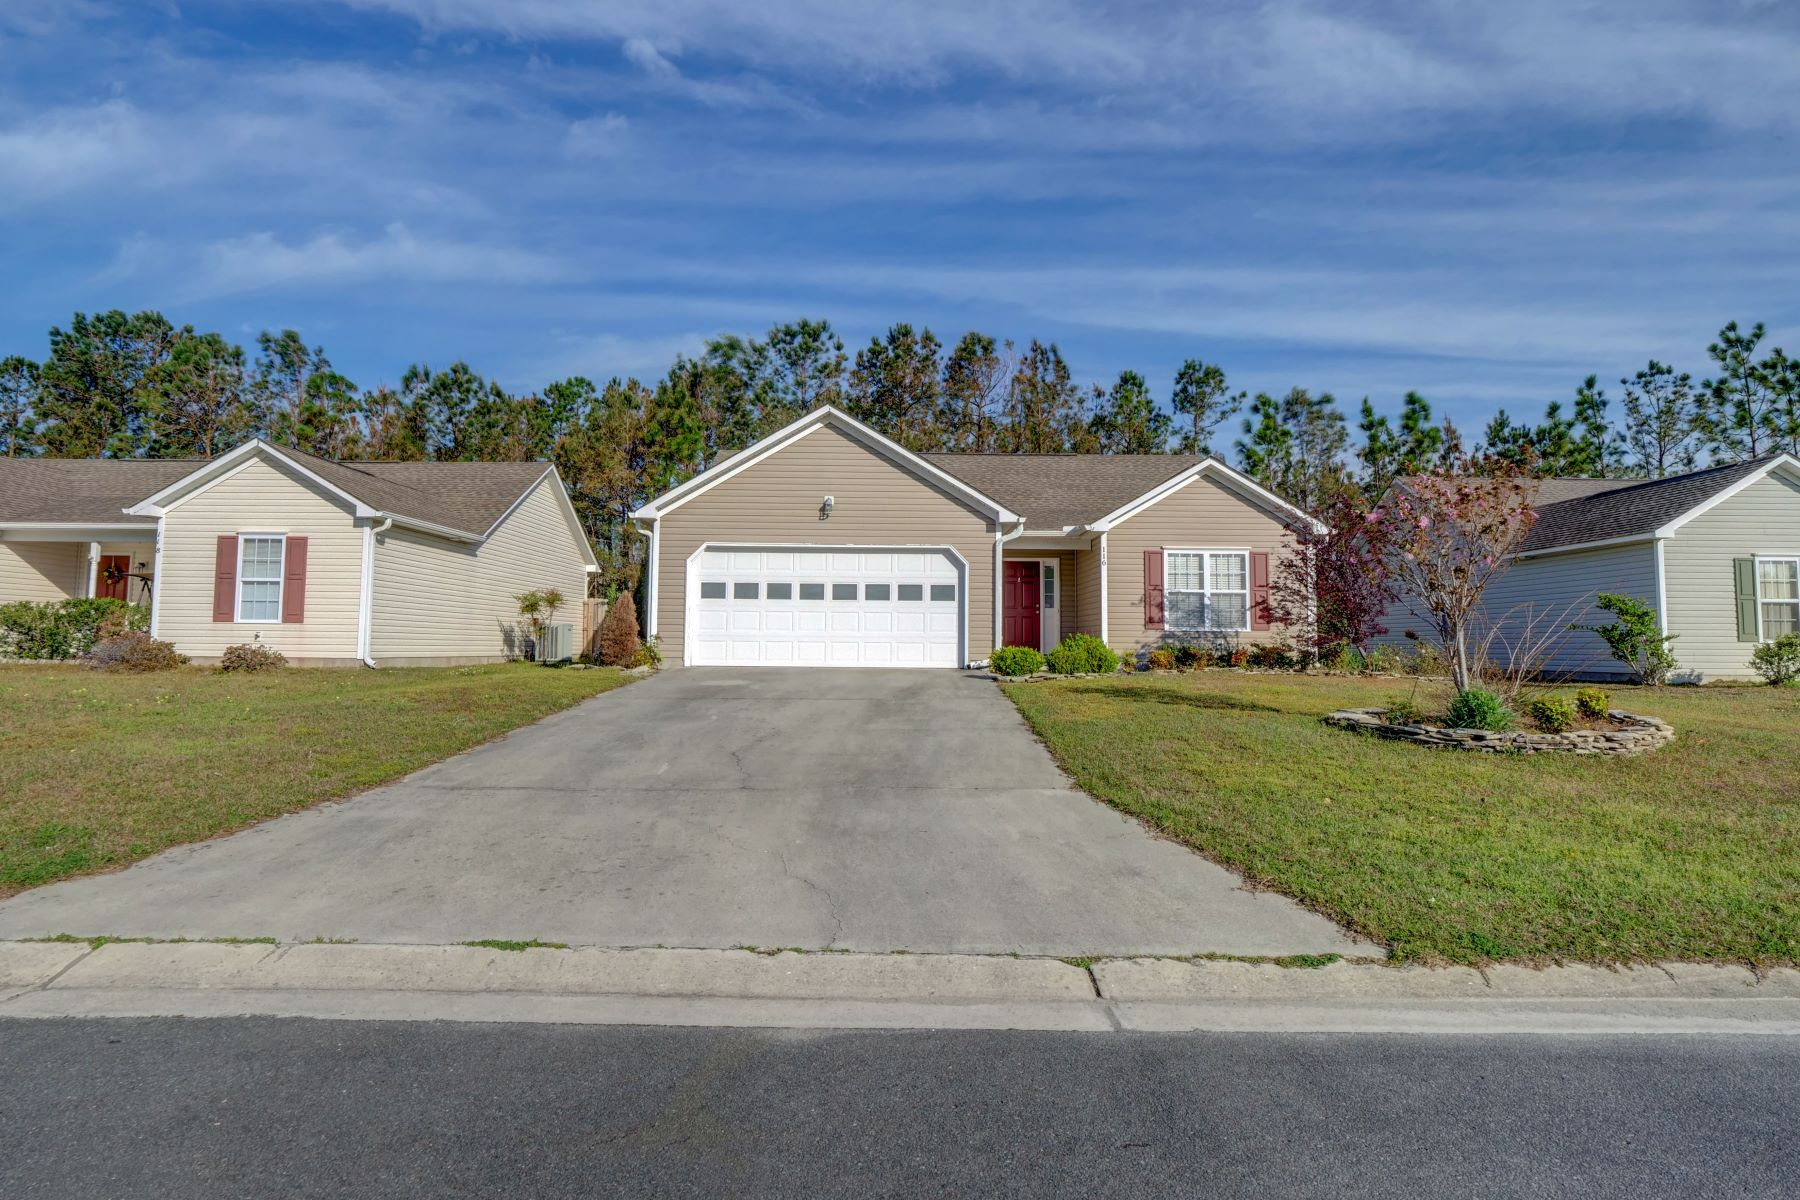 Single Family Home for Active at Charming Home with Private Fenced in Yard 116 Belvedere Drive Holly Ridge, North Carolina 28445 United States